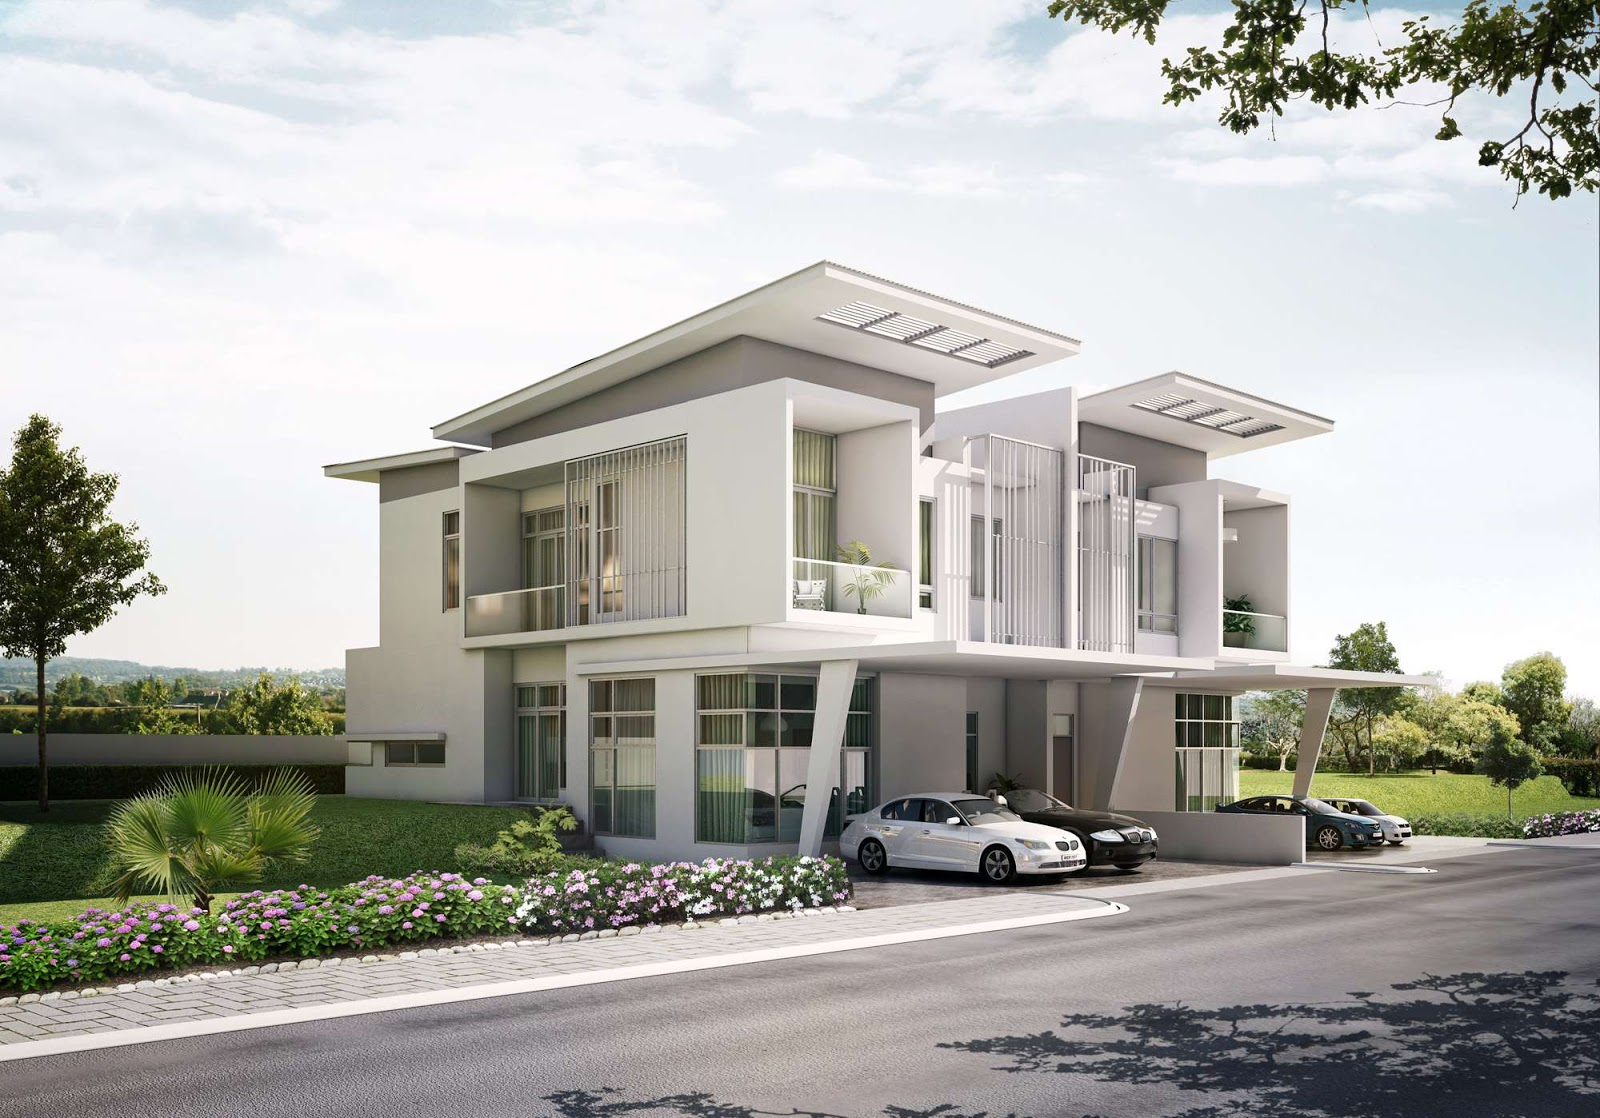 New home designs latest singapore modern homes exterior for House exterior design pictures